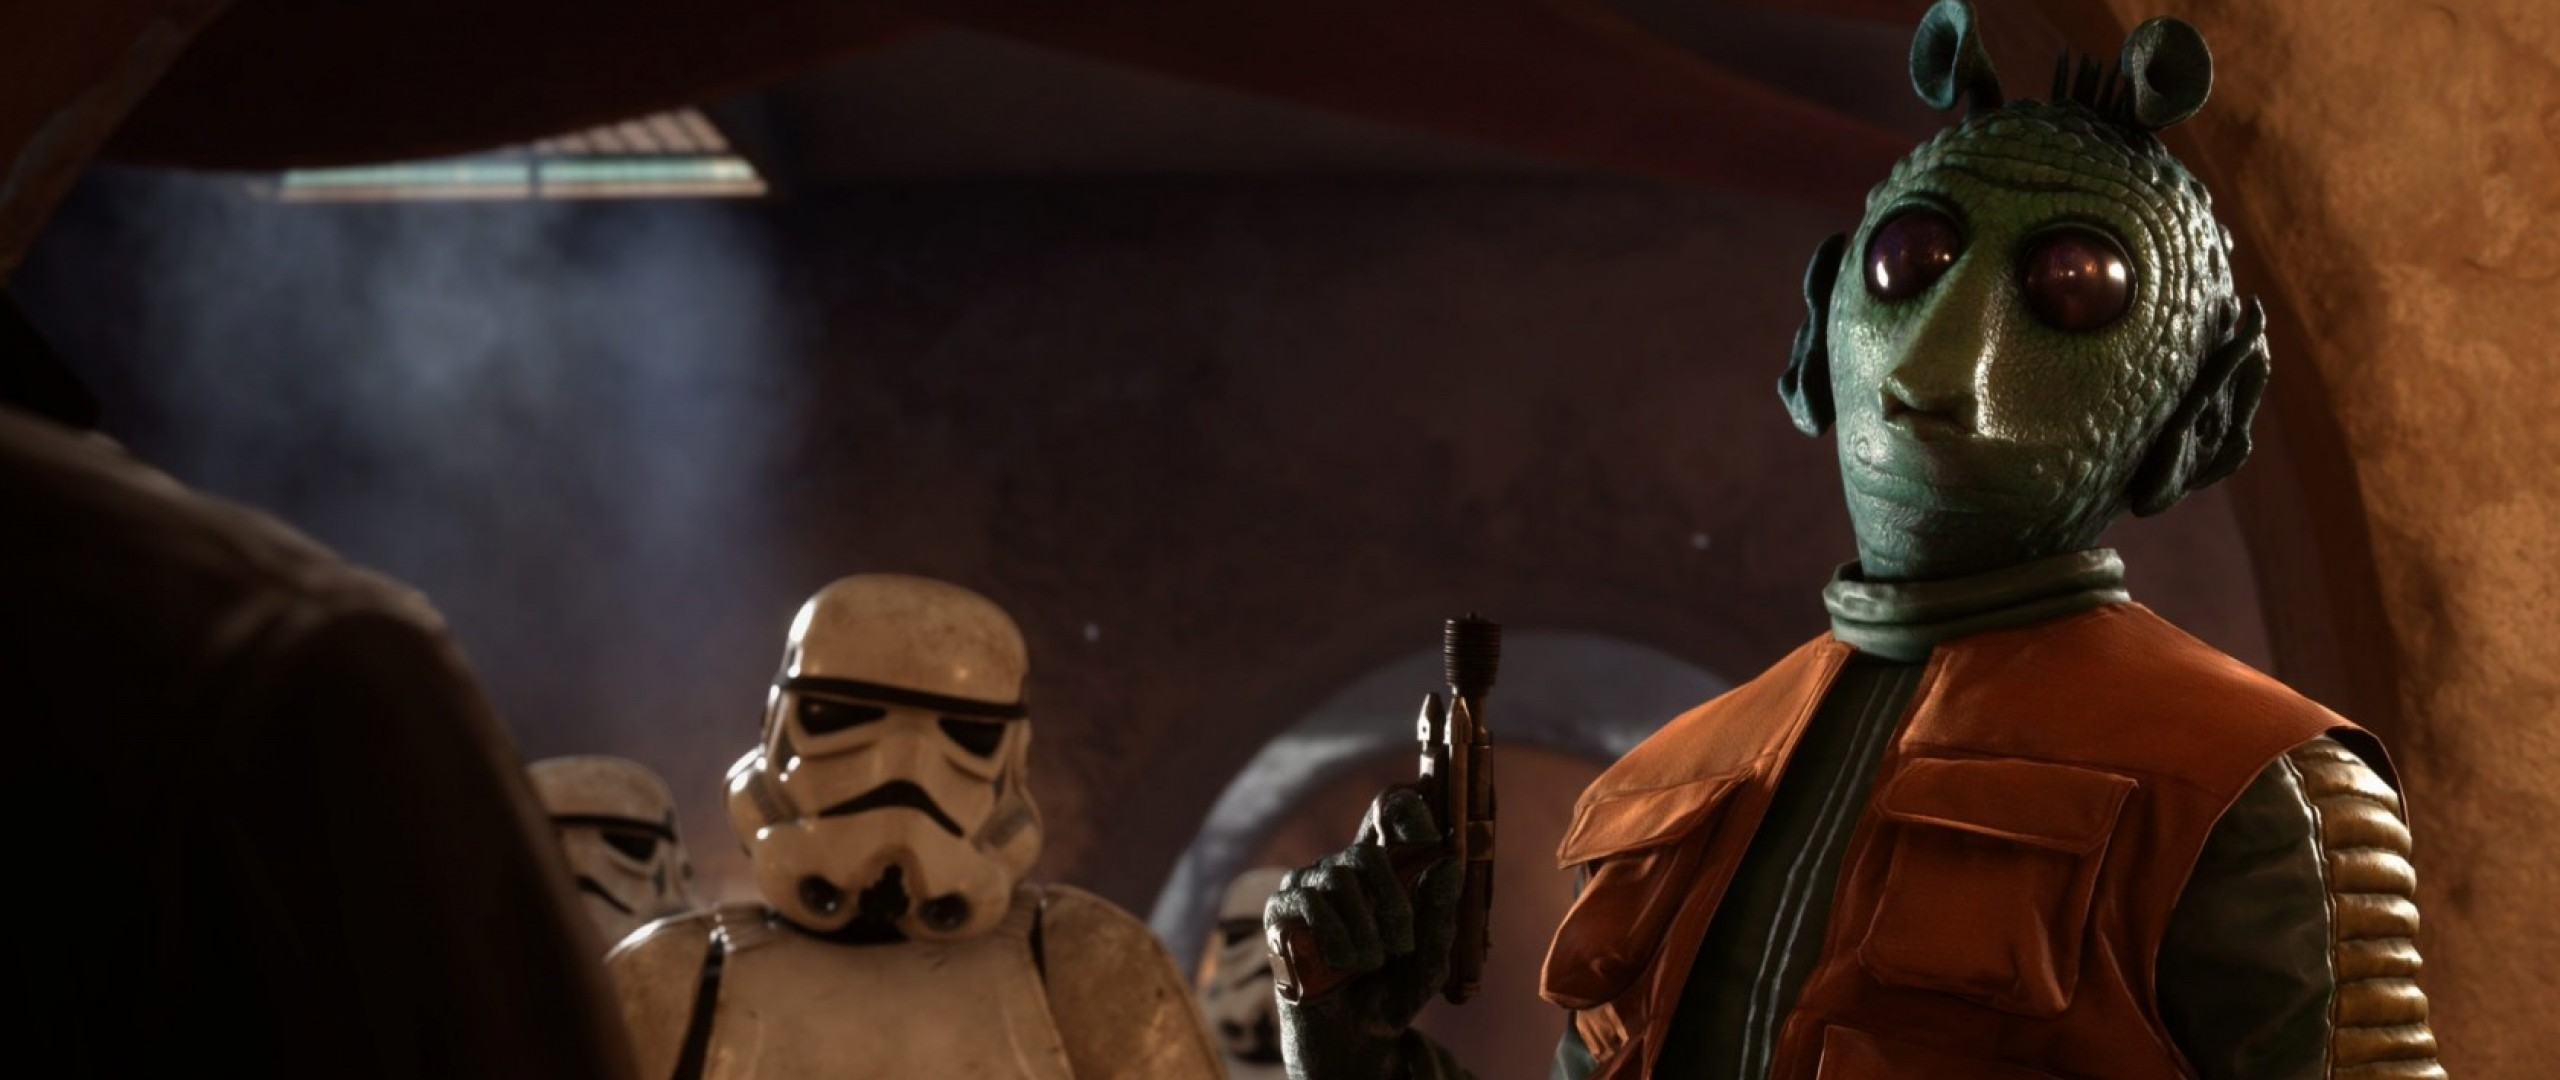 Wallpaper star wars battlefront, outer rim, dice, electronic arts